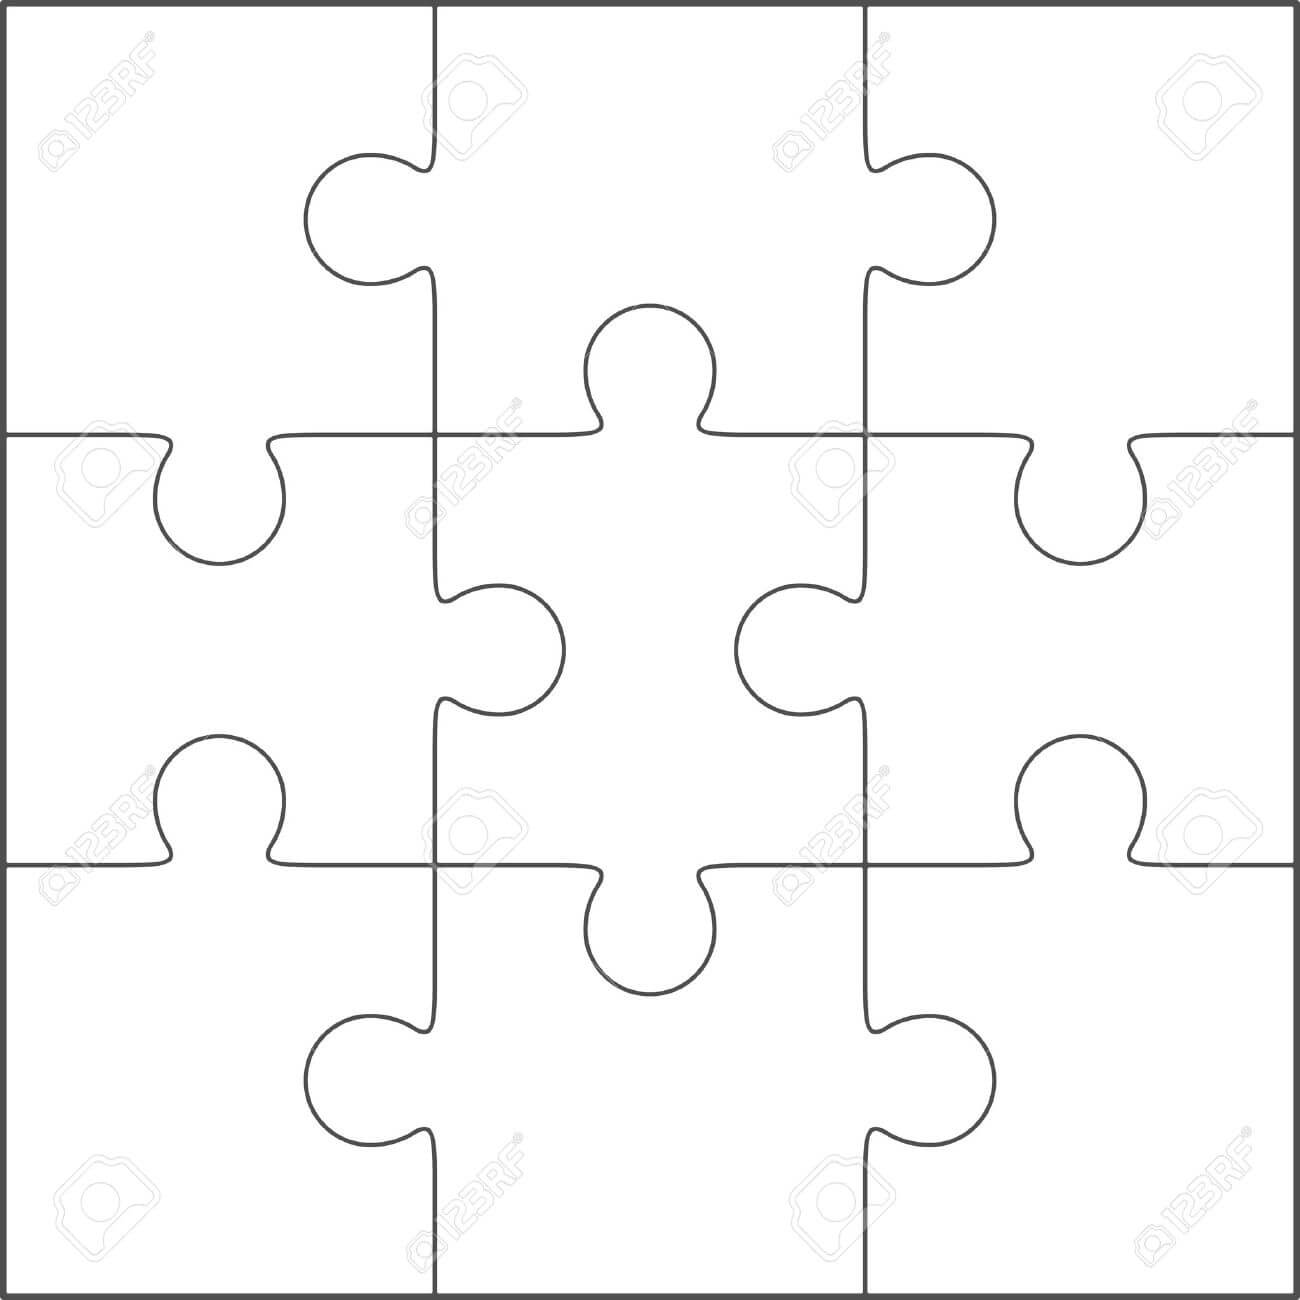 Jigsaw Puzzle Vector, Blank Simple Template 3X3 Throughout Blank Jigsaw Piece Template